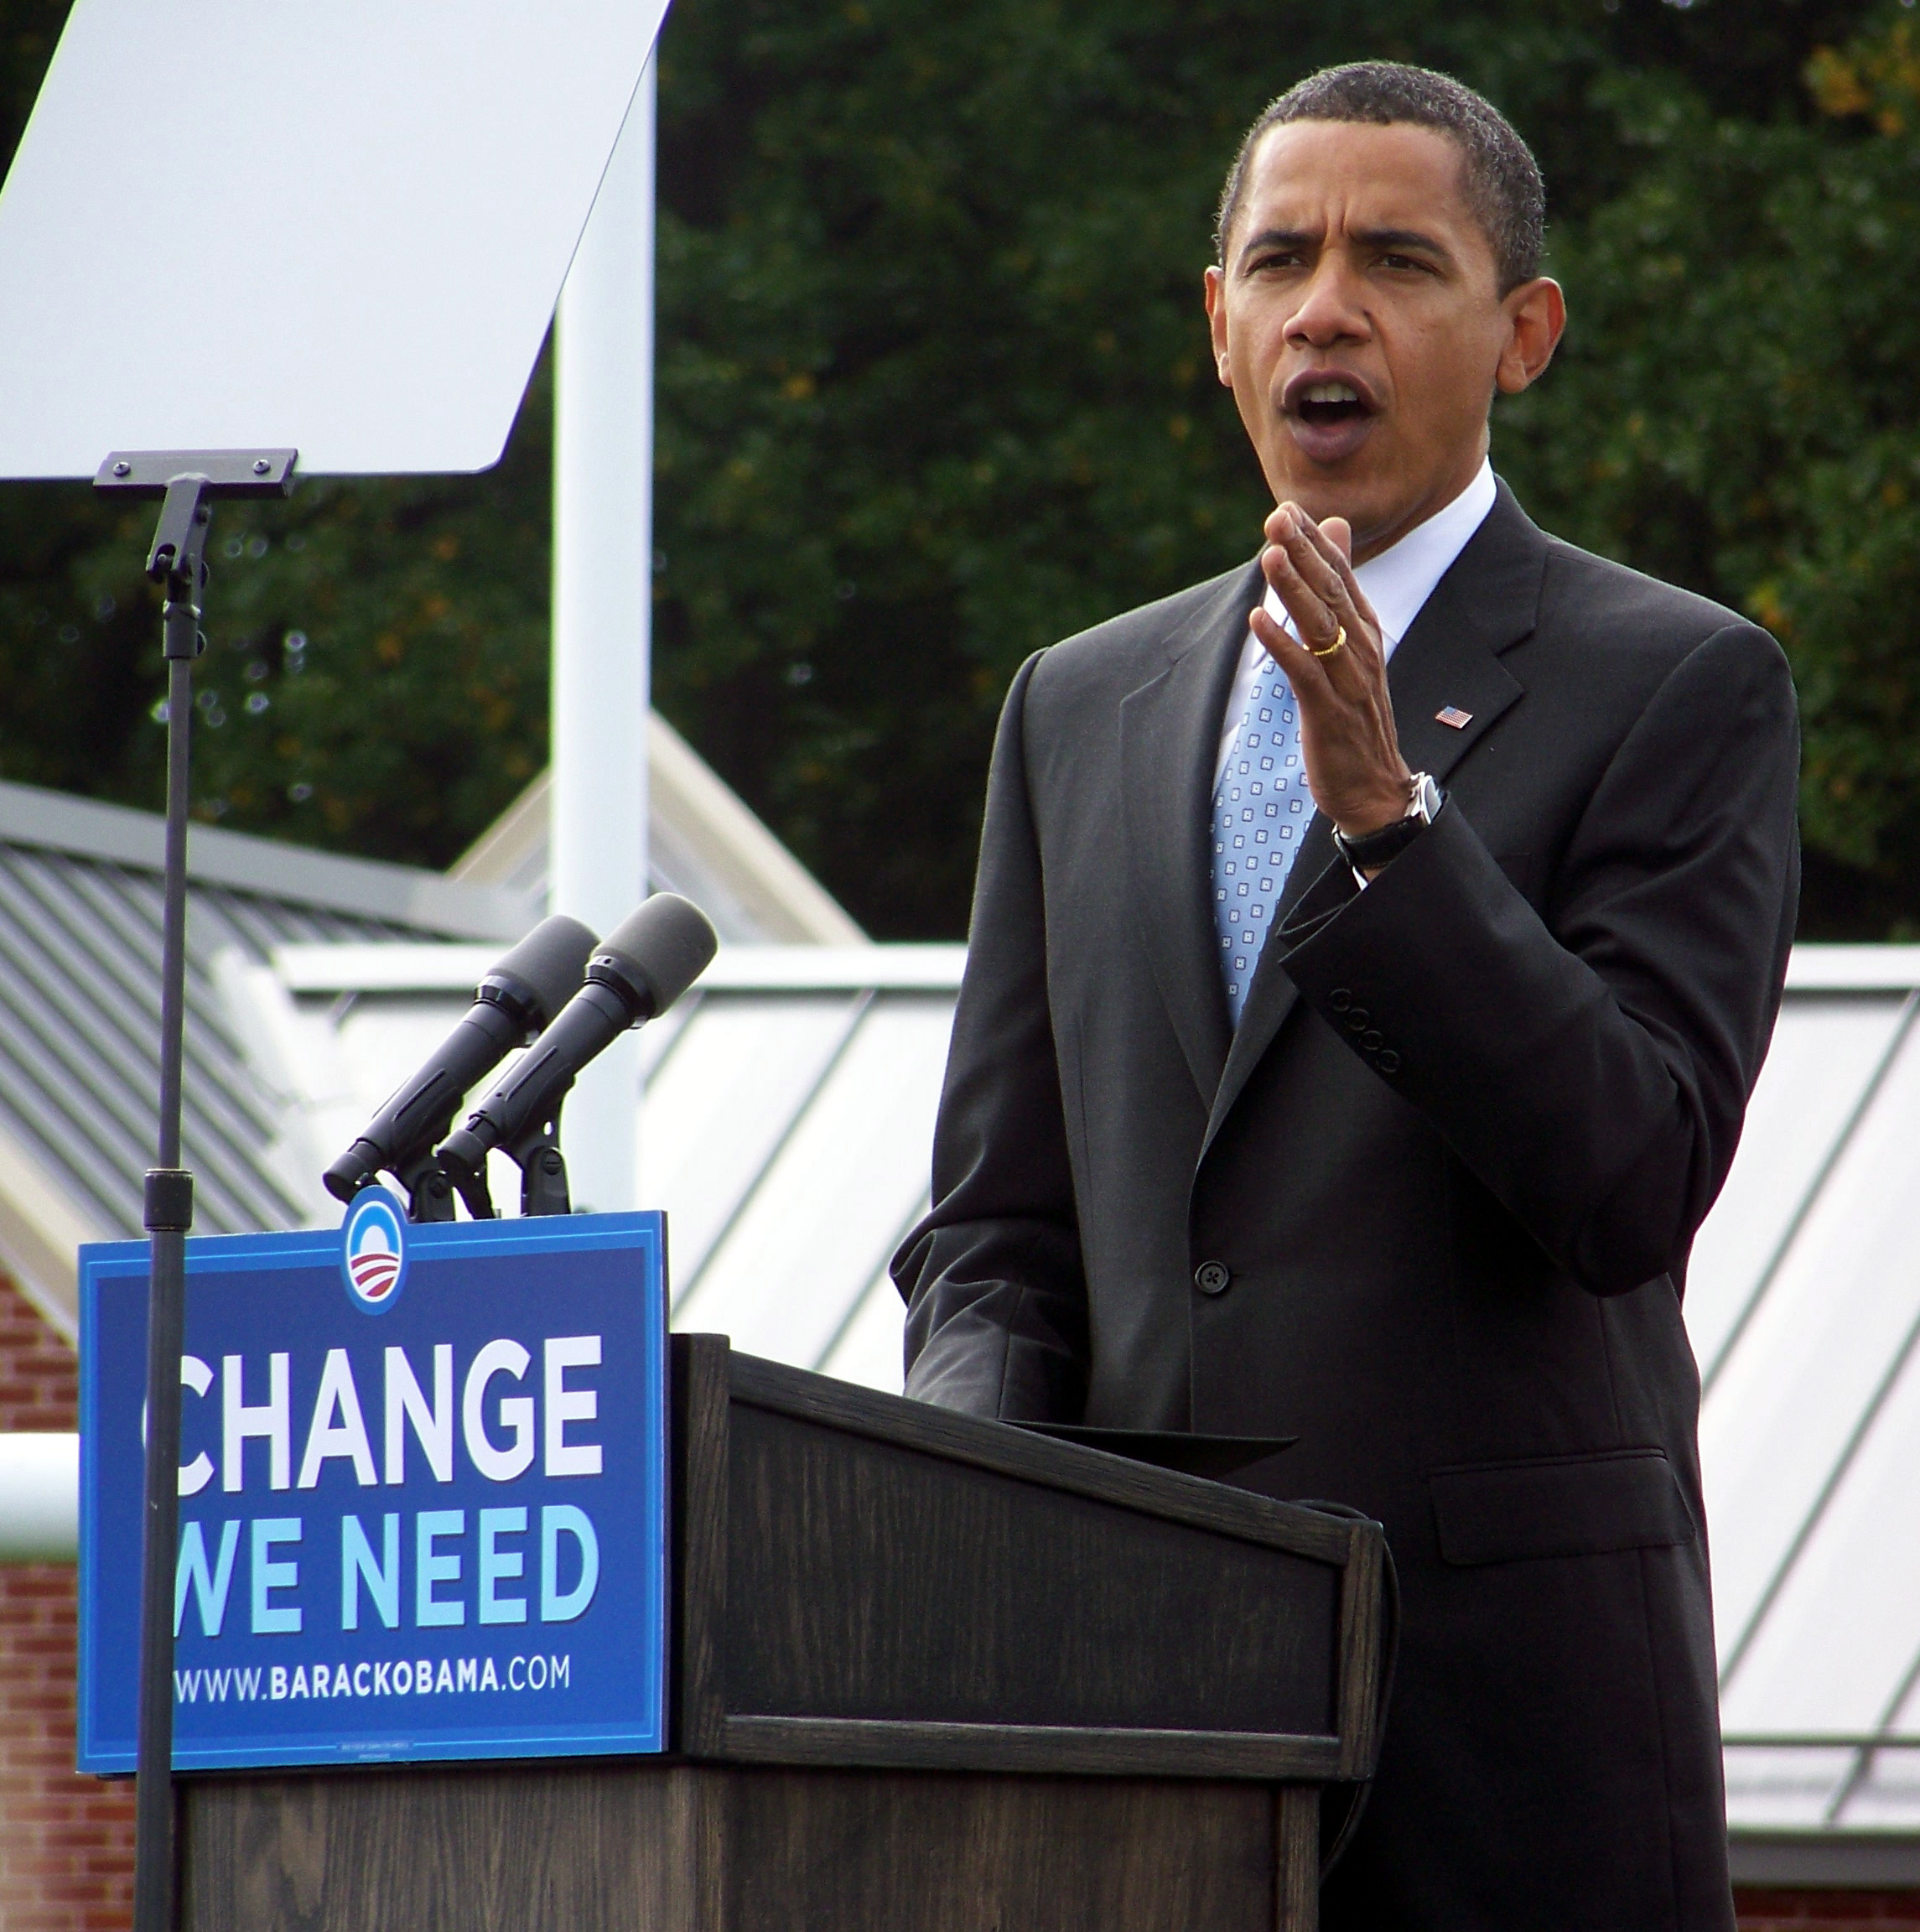 President Obama in August 2008